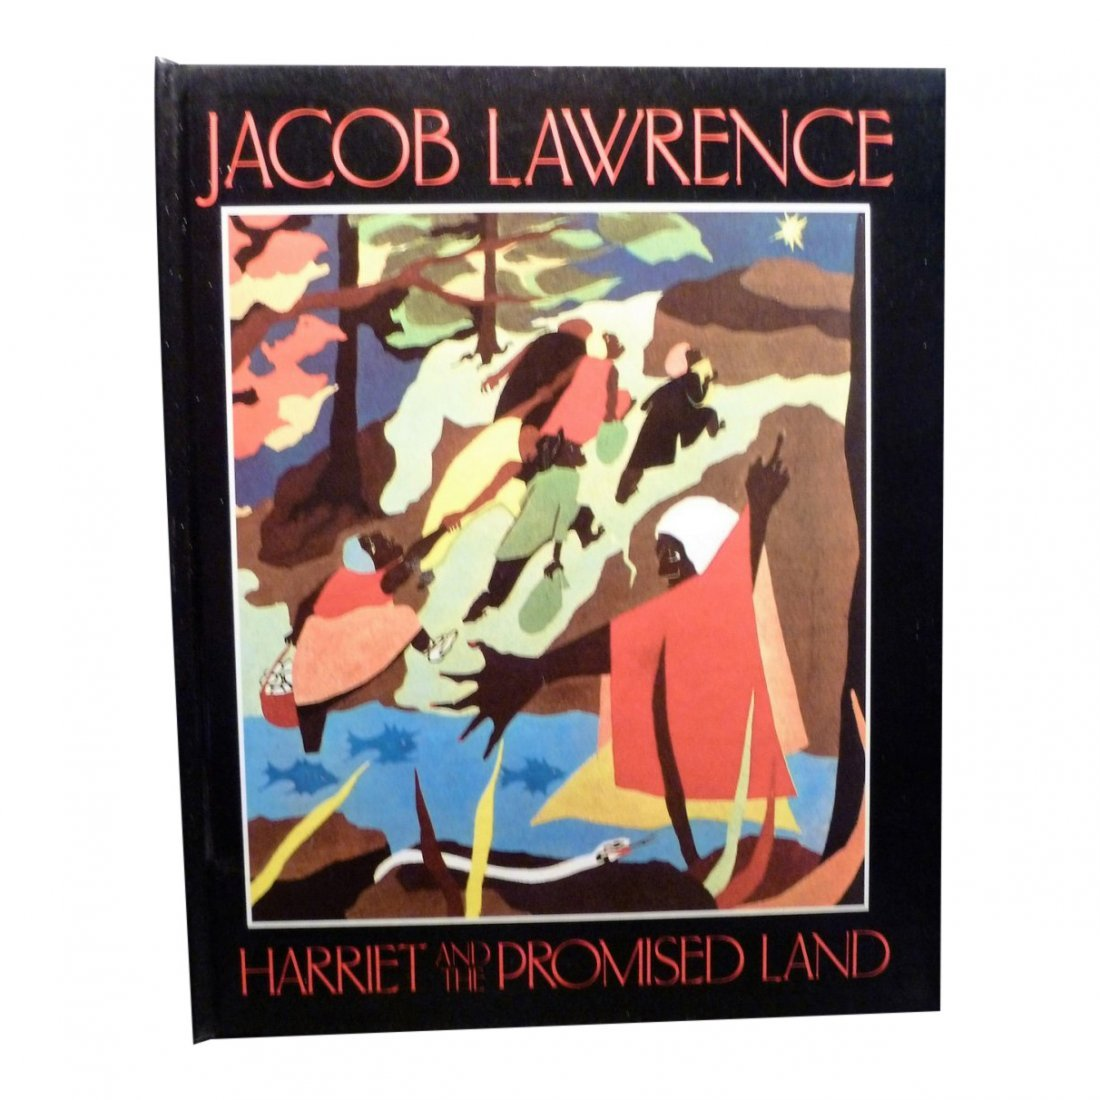 Jacob Lawrence: Harriet and the Promised Land - Signed